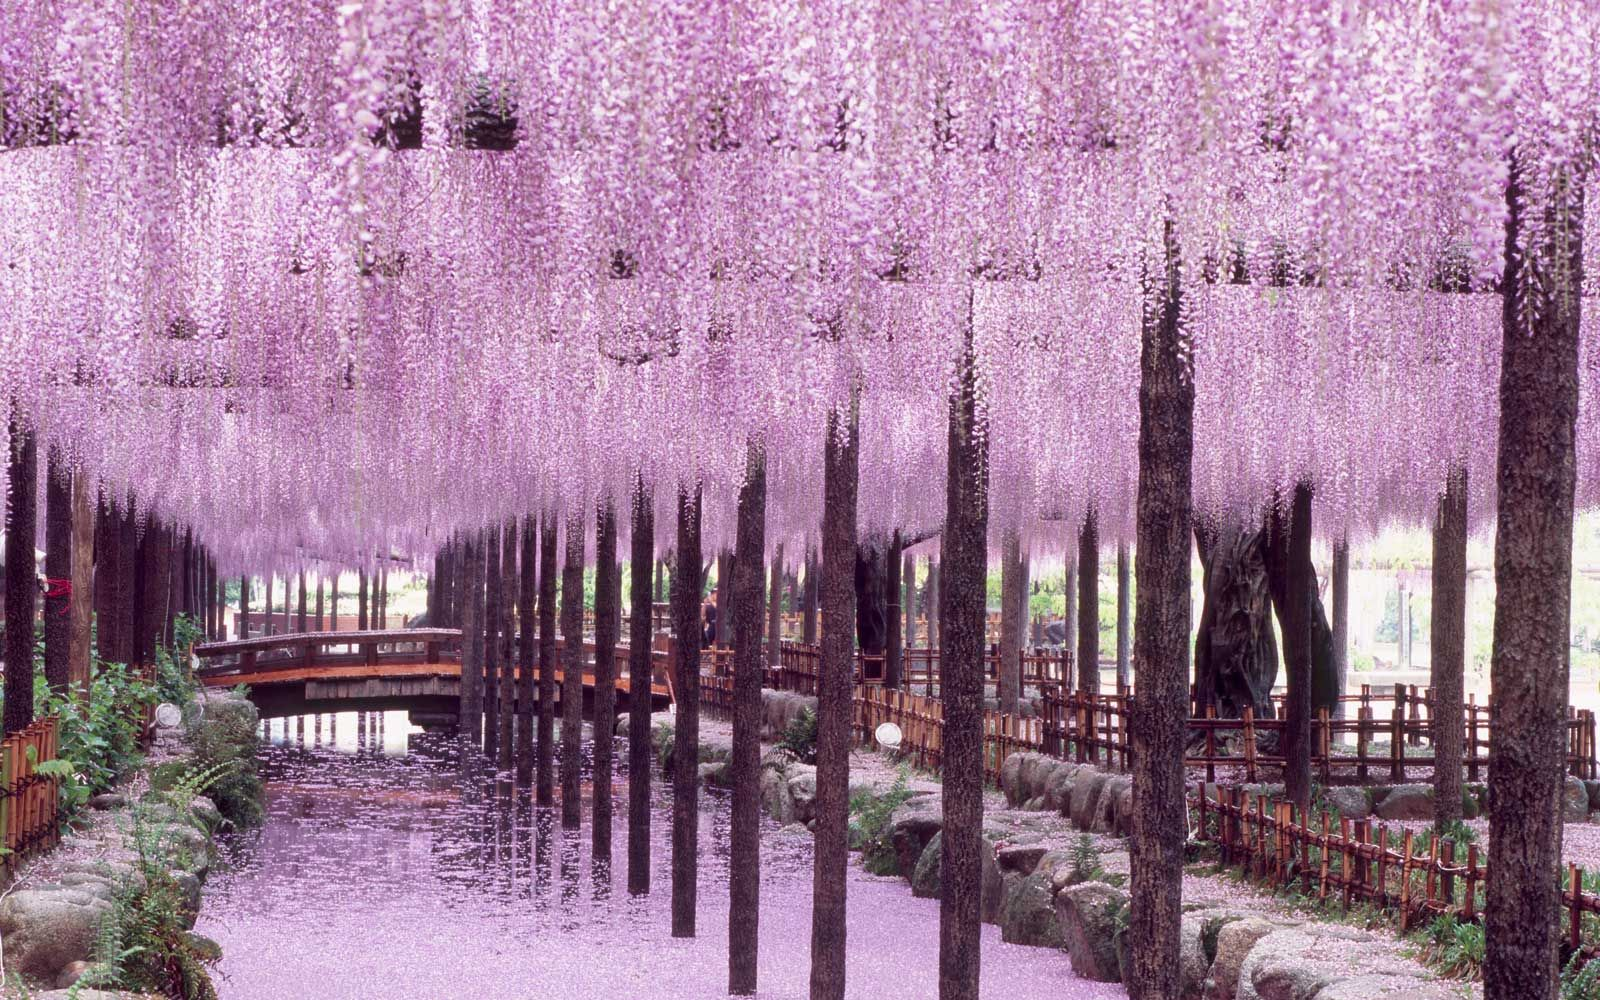 Japan S Wisteria Tunnels Are Even More Magical Than Its Cherry Blossoms Here S Where To See The Be Wisteria Tunnel Wisteria Tunnel Japan Cherry Blossom Japan